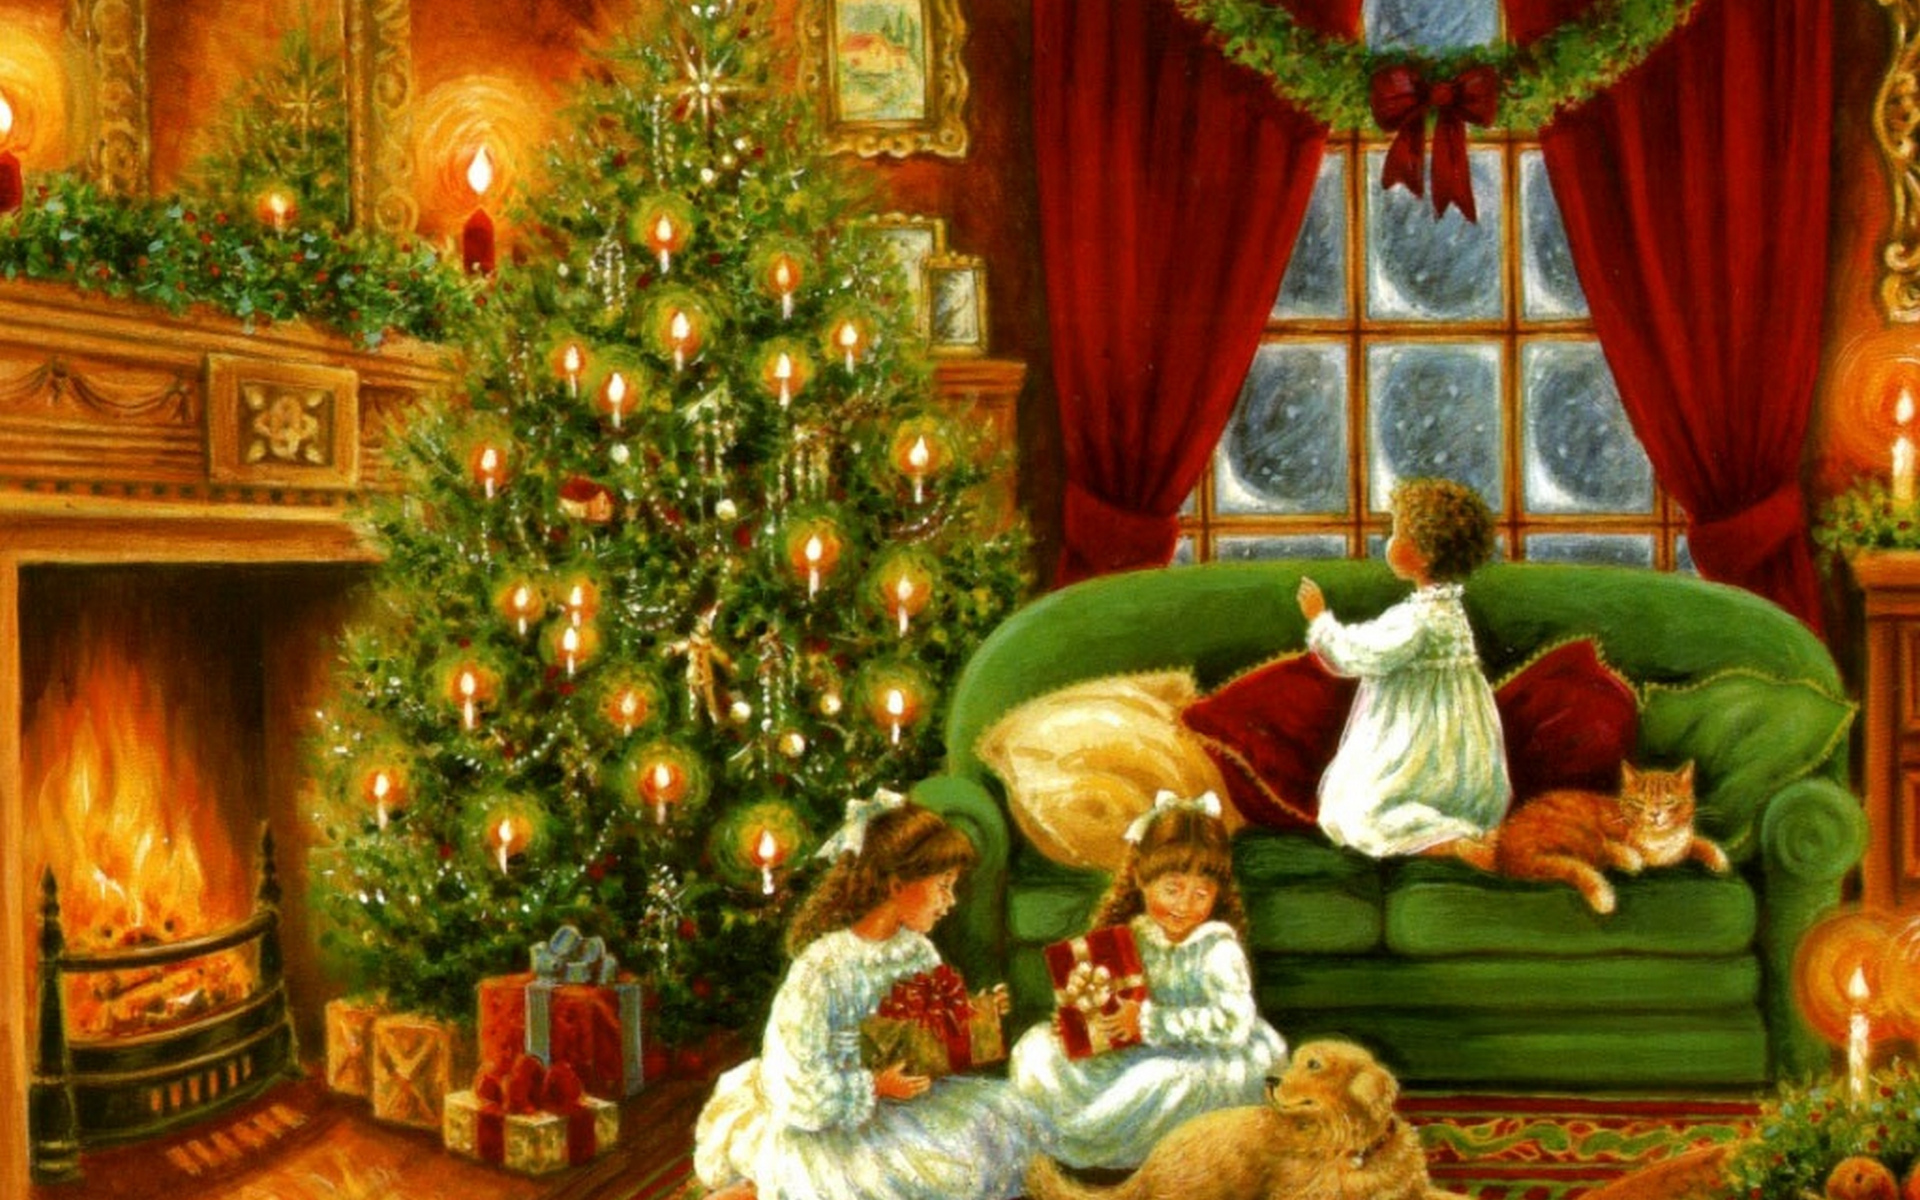 merry-chistmas-christmas-free-hd-wallappers - hd wallpaper